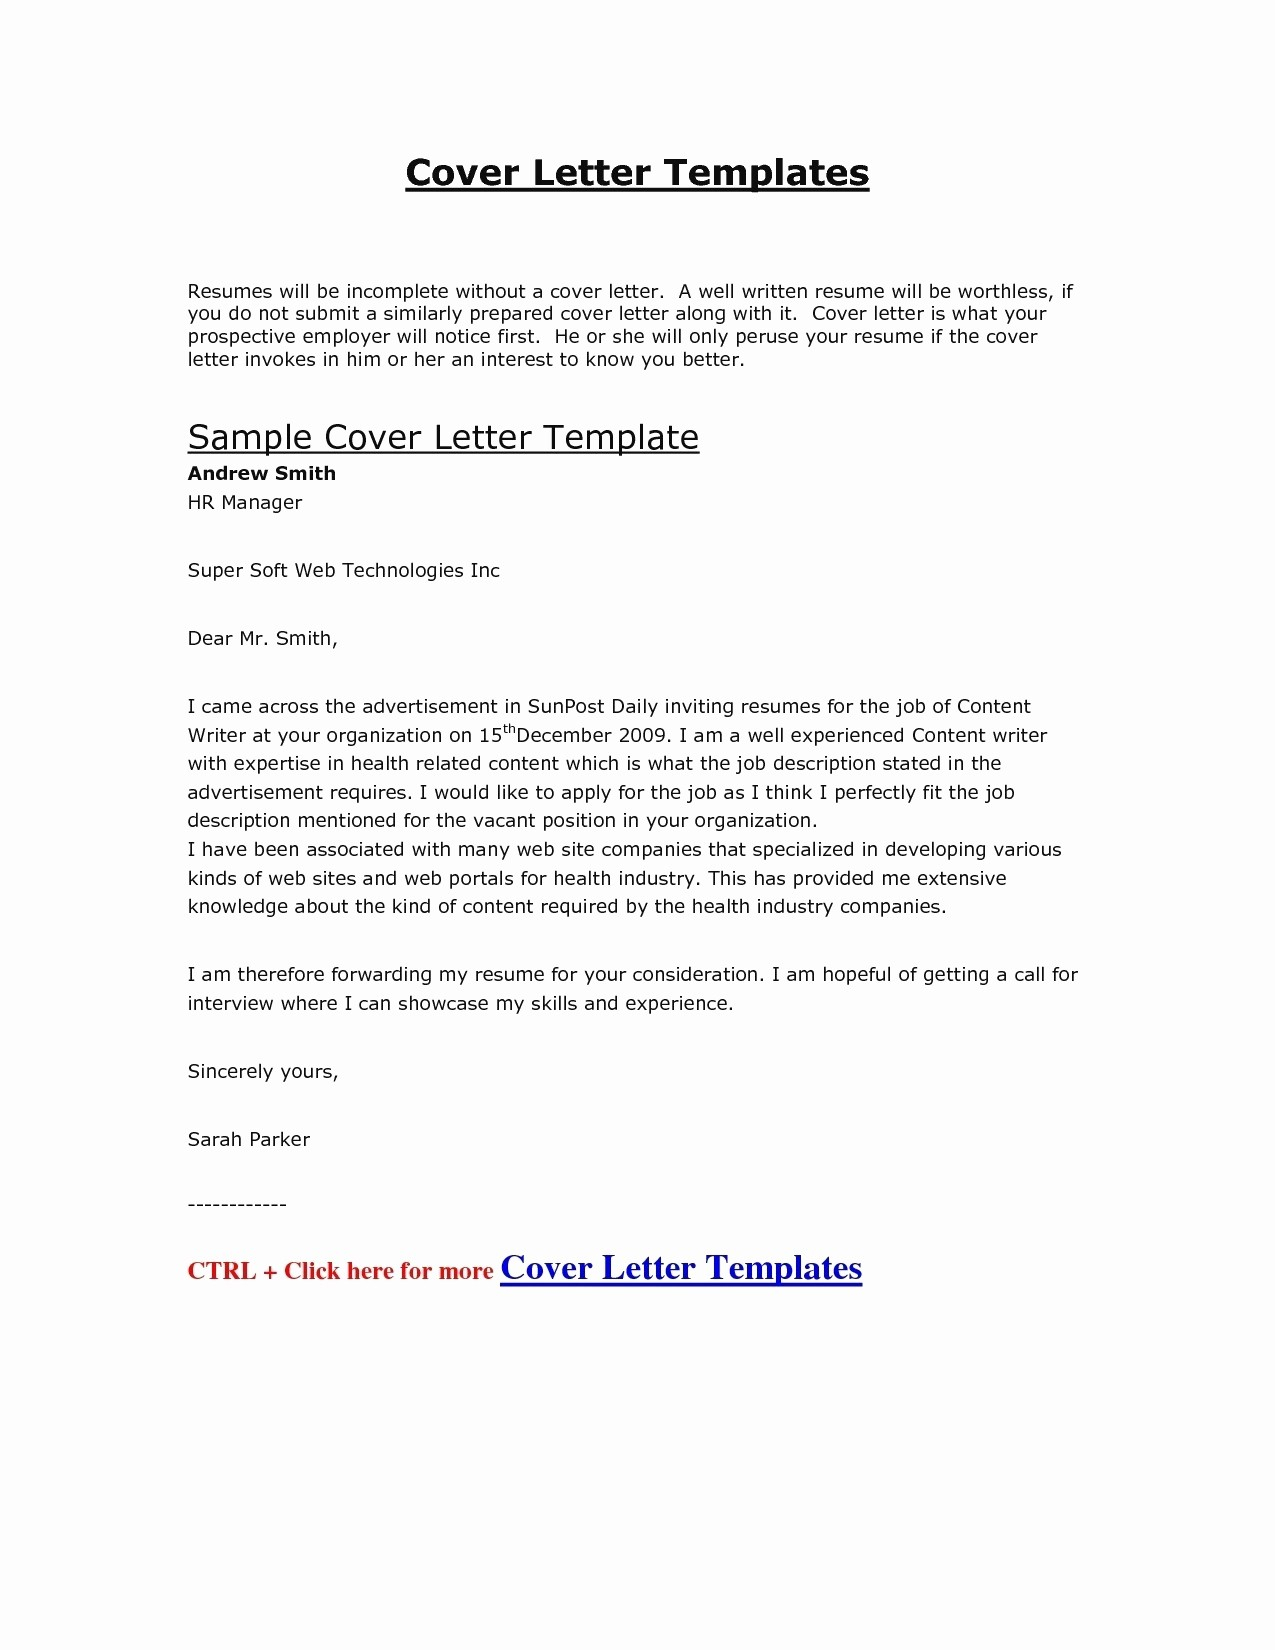 Formal Letter Format Template Job Application Copy Cover Hr